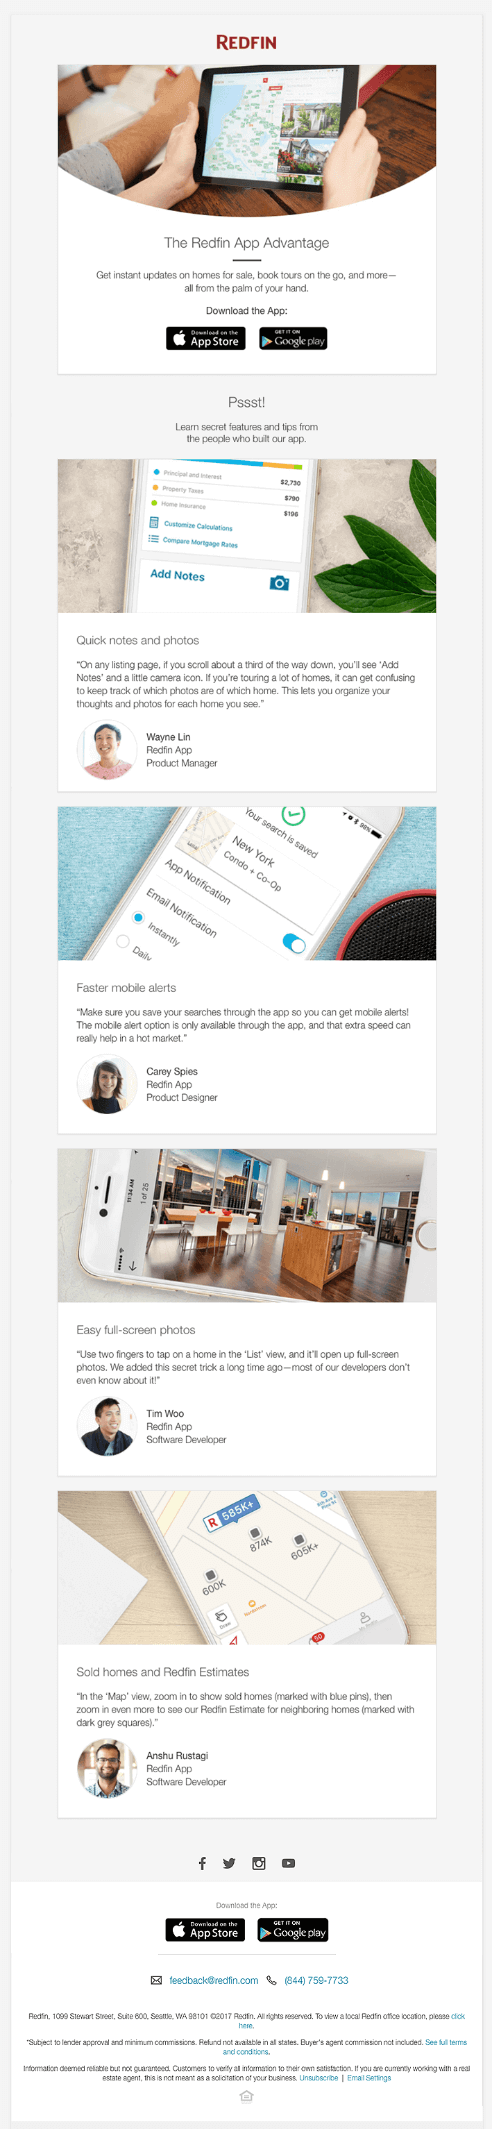 redfin-email